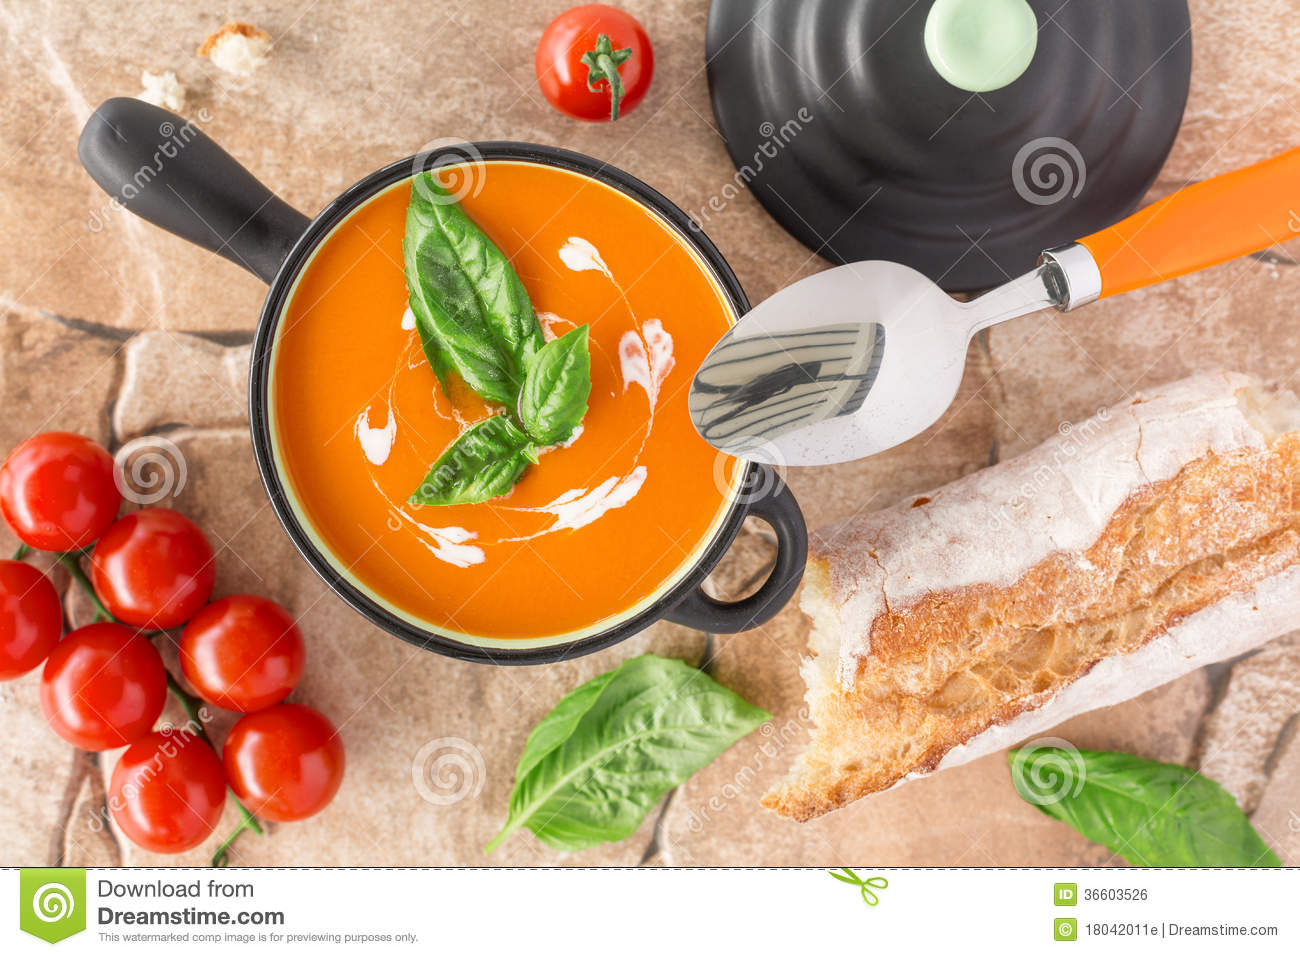 Overhead View Of A Tomato Soup Royalty Free Stock Image ... Cream Of Tomato Soup With Garnish